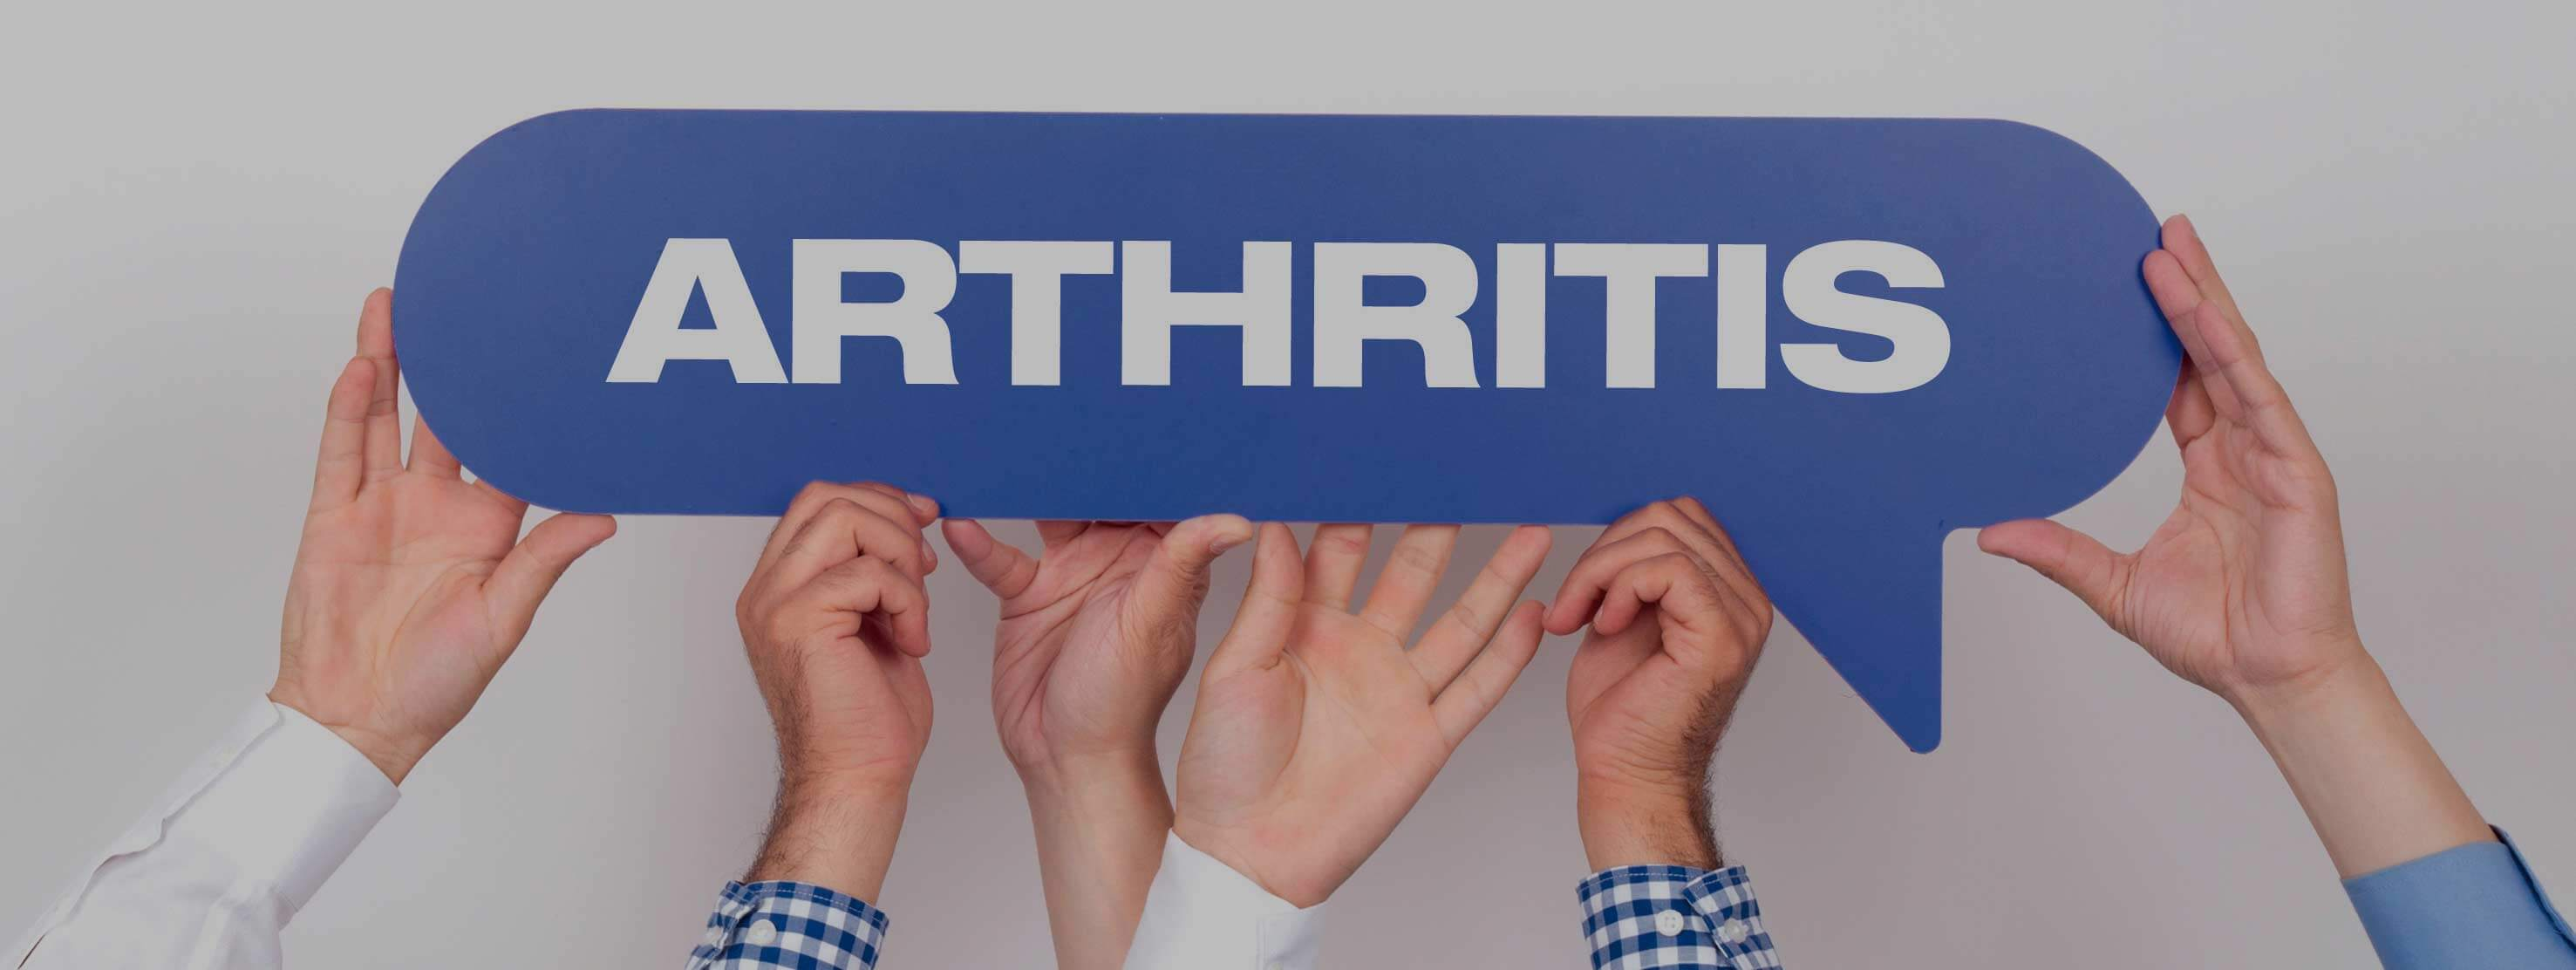 Arthritis - Accurate diagnosis and effective therapy at reputable German hospitals